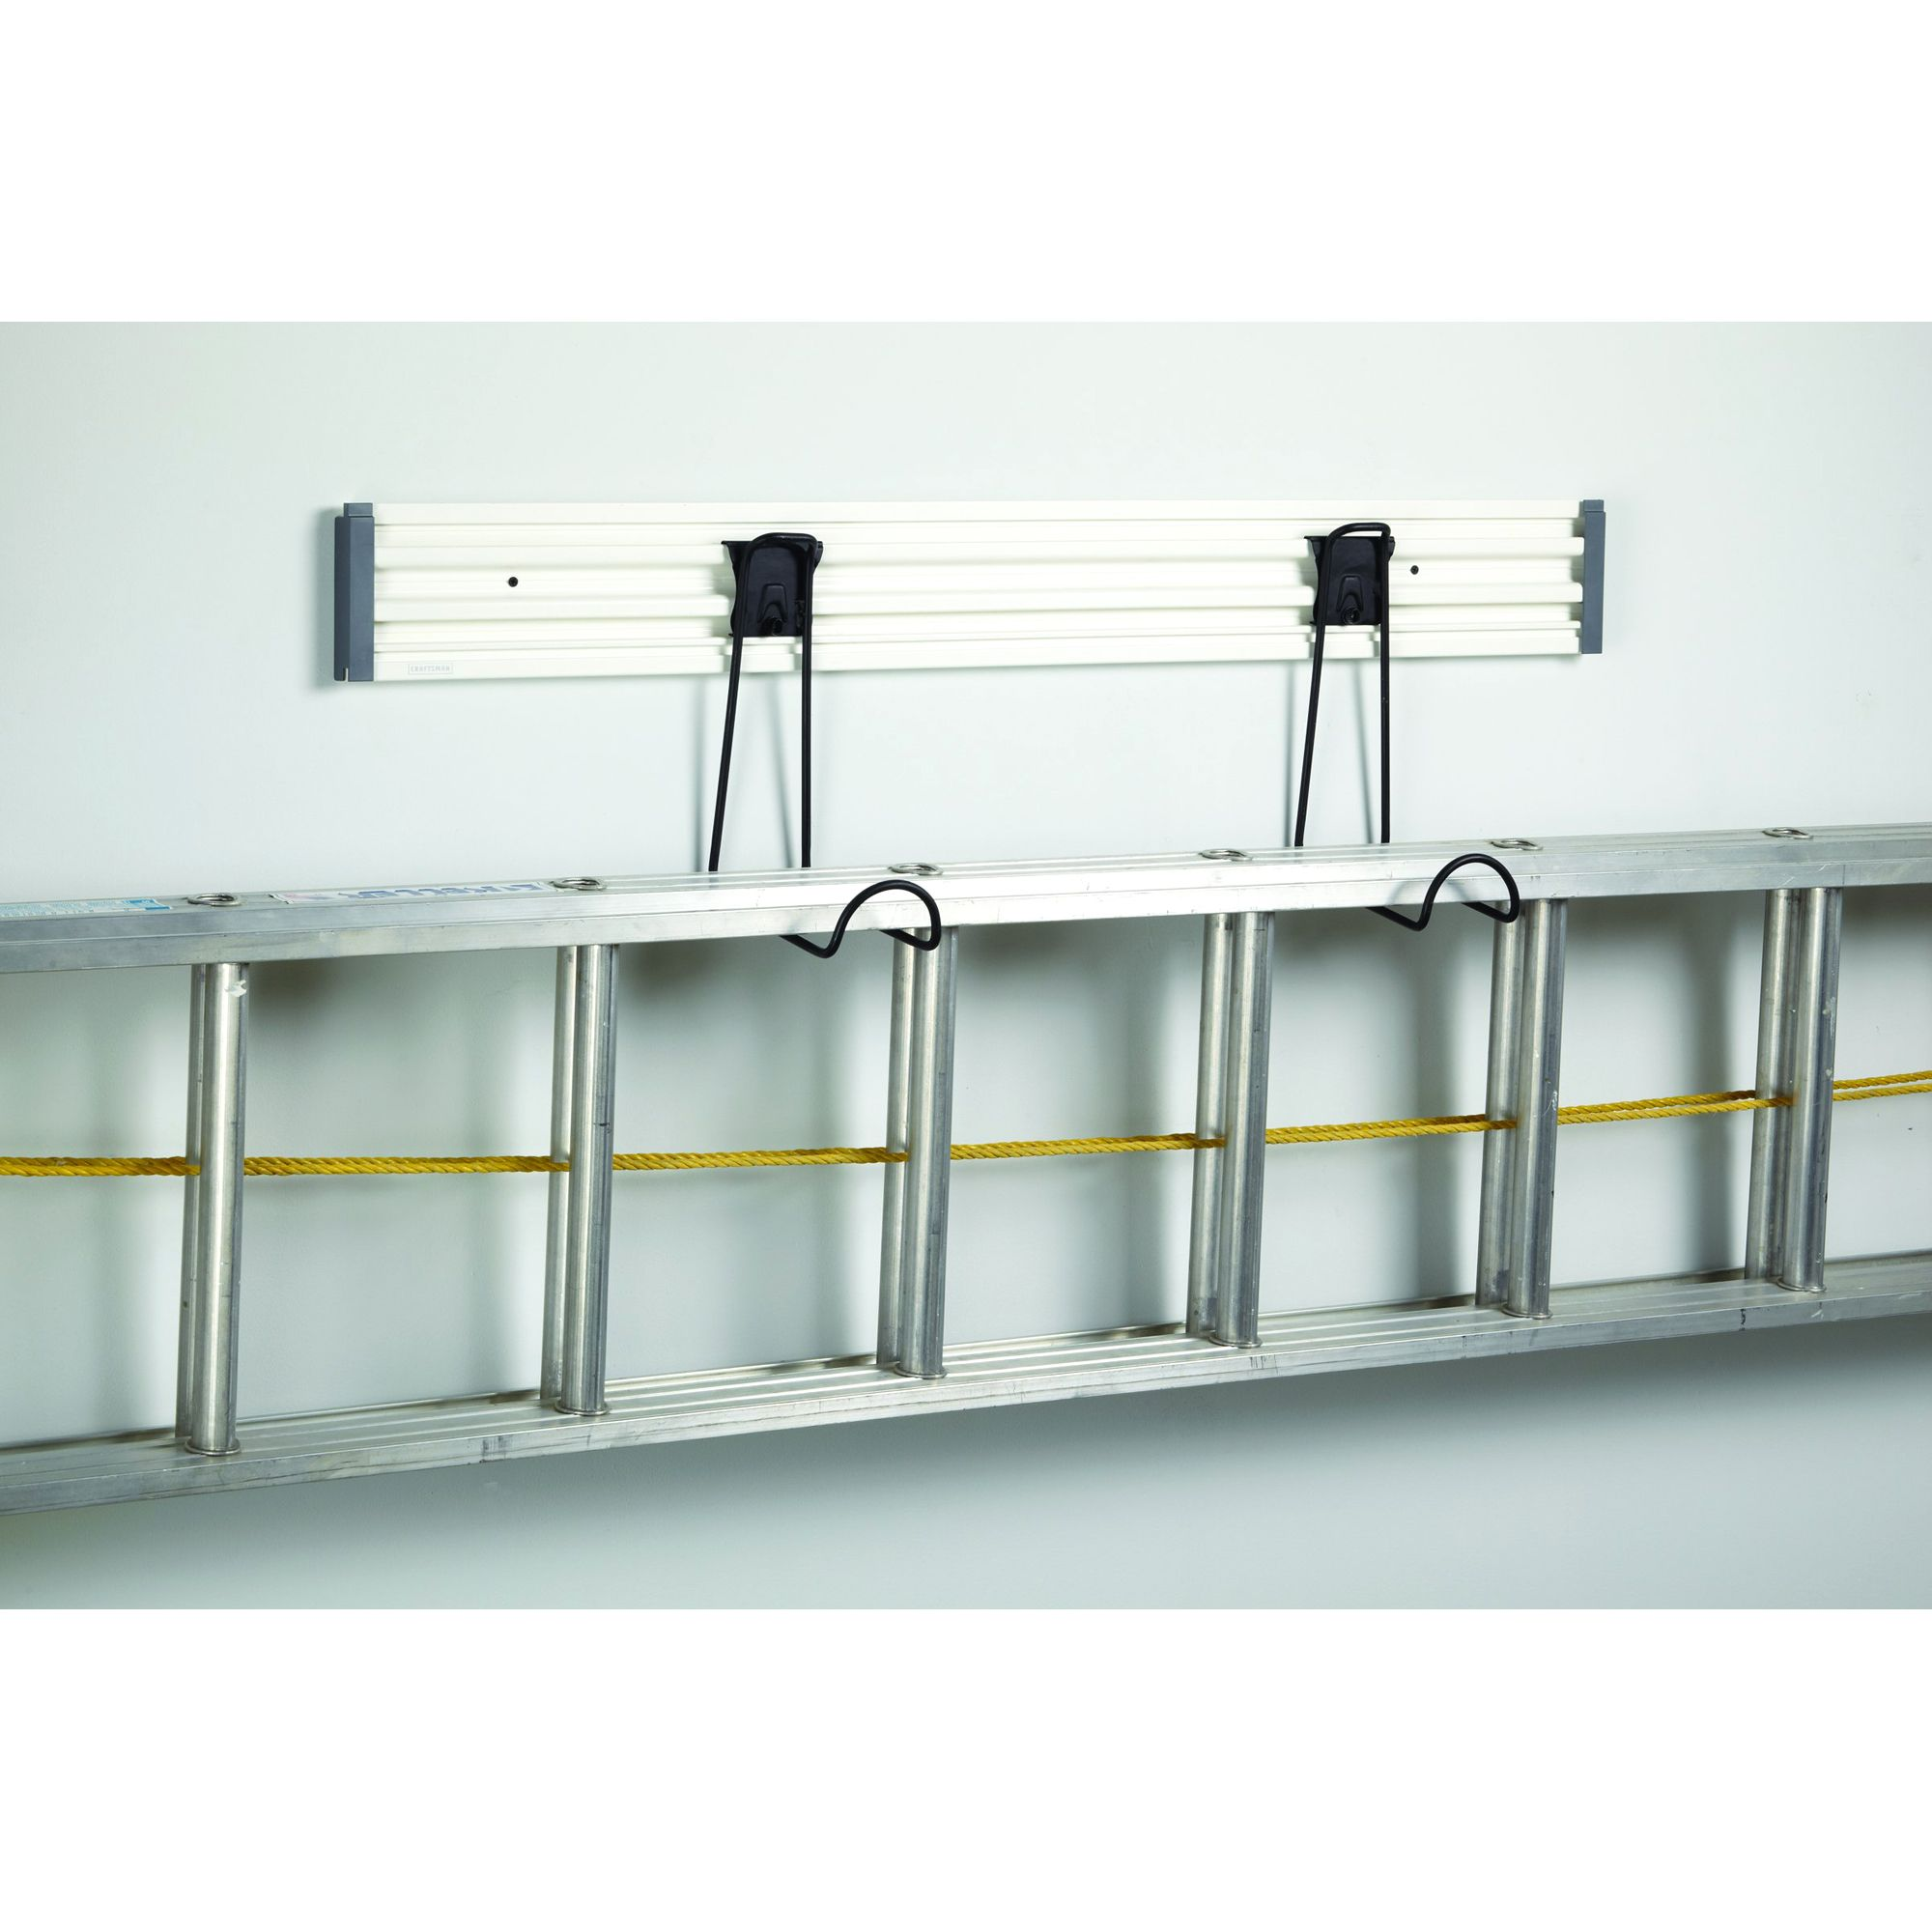 Craftsman Hooktite™ Ladder Hook for VersaTrack Trackwall